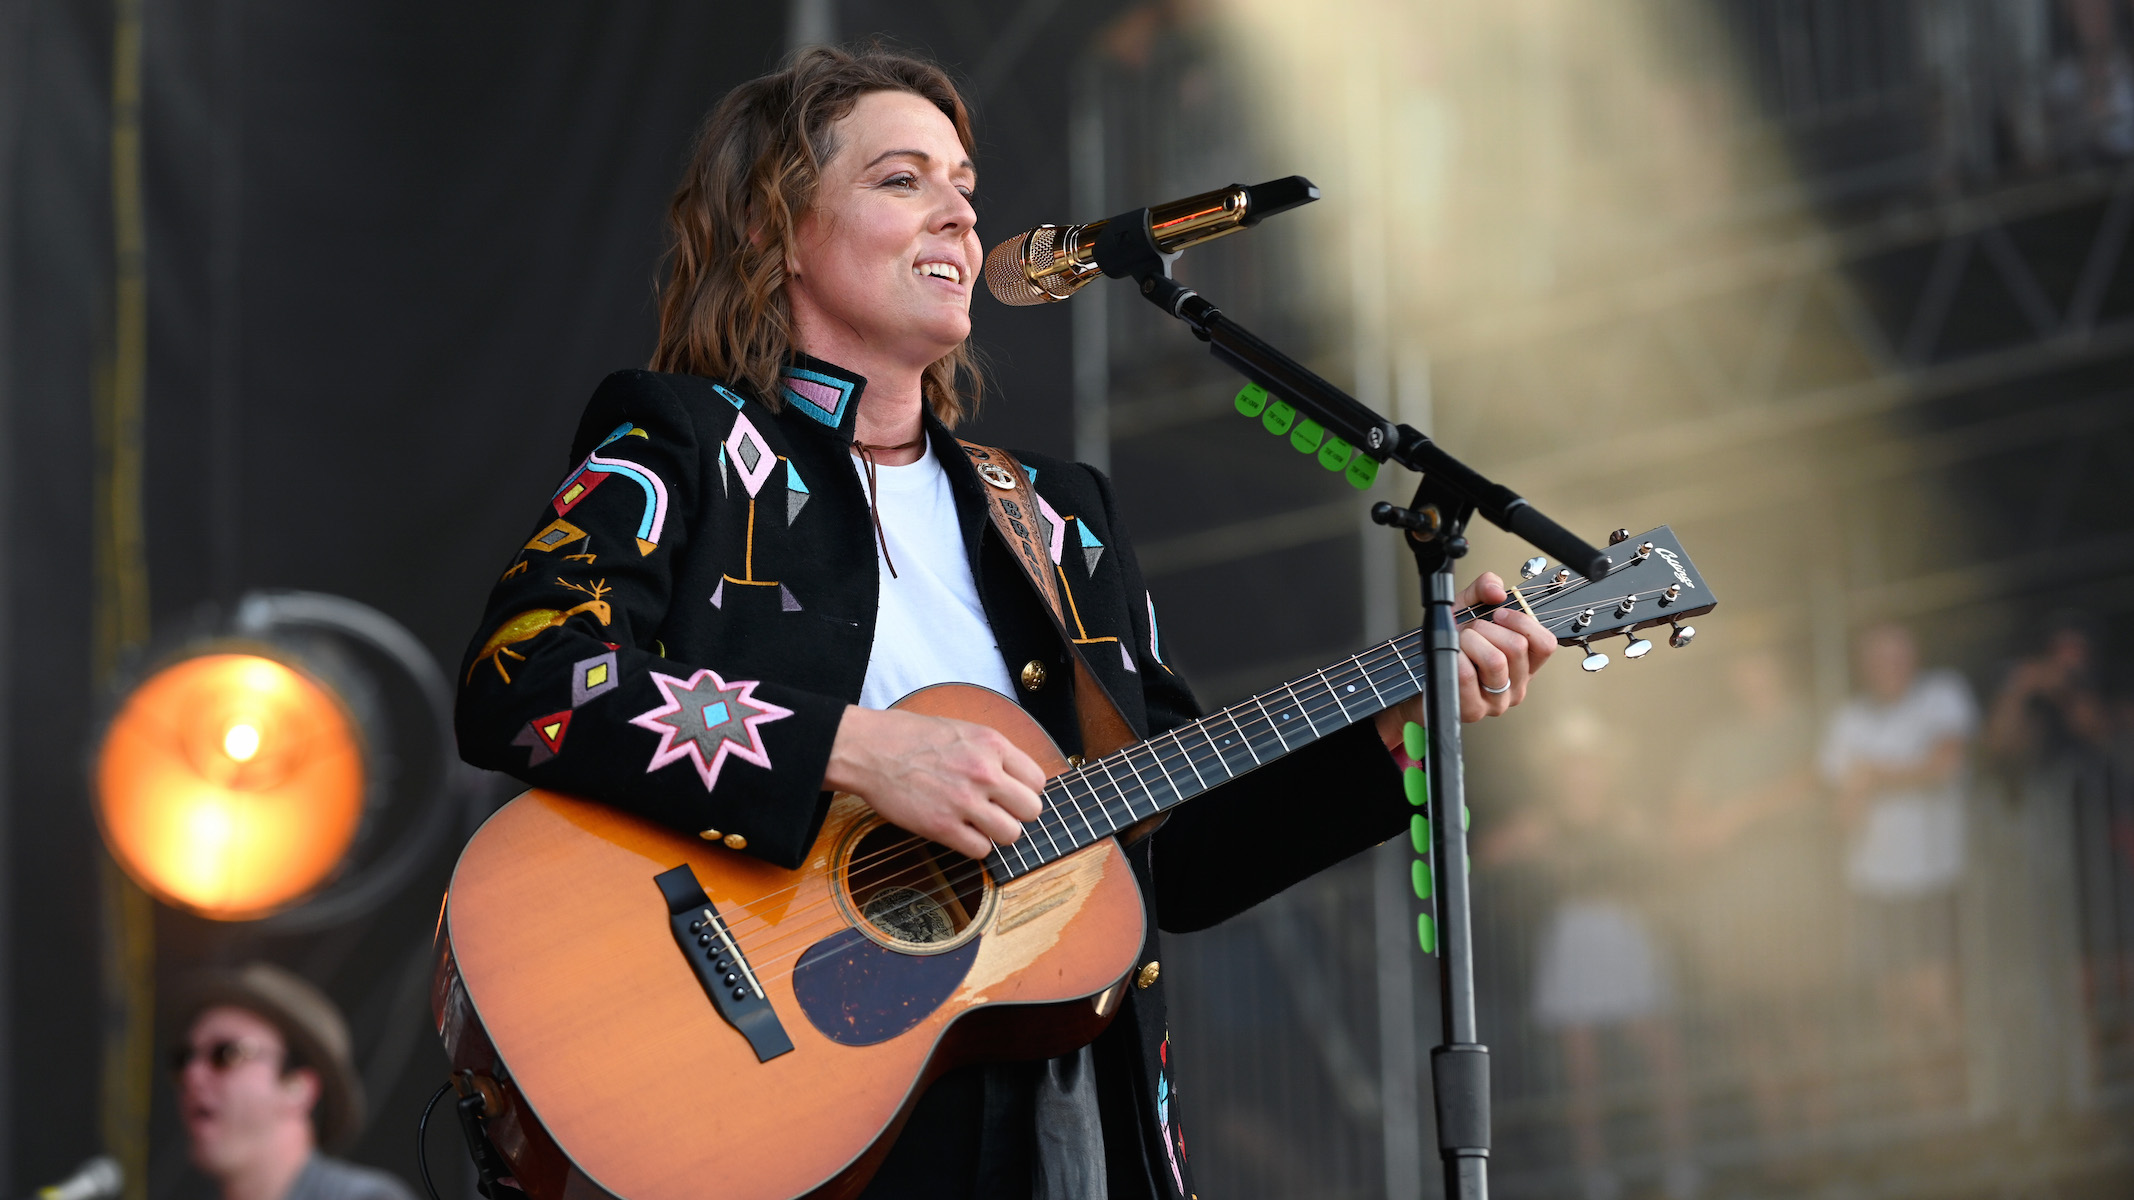 Bonnaroo 2019 Day 4 Recap: Brandi Carlile, Mac DeMarco, Maya Rudolph and More